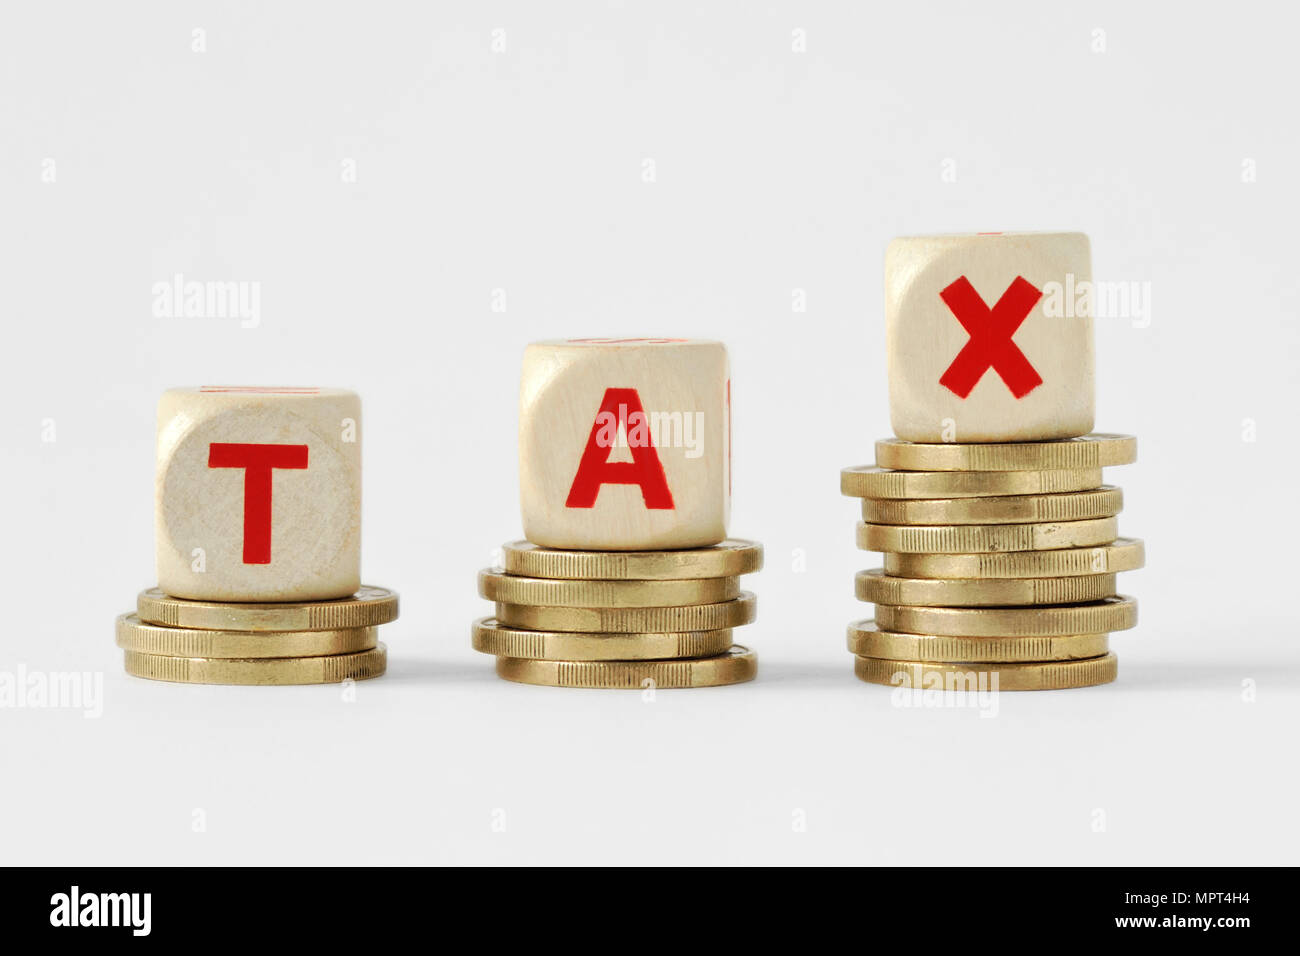 Concept Paying Taxes Stock Photos & Concept Paying Taxes